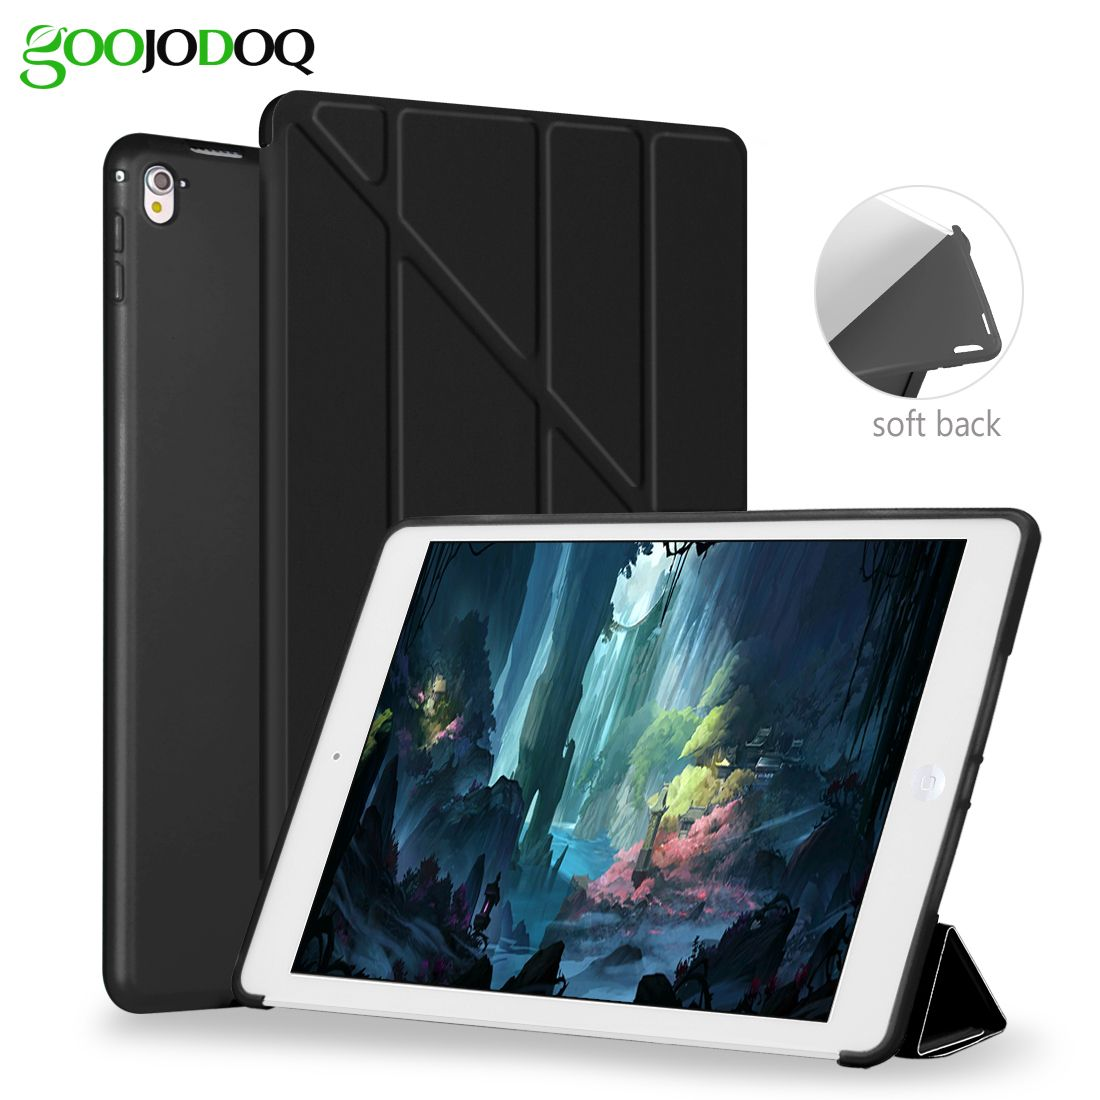 For Ipad Pro 10 5 Casetransformers Ultra Slim Pu Leathersilicone Soft Back Smart Cover Case Coque For Ipad Pro 10 5 Inch A1701 Ipad Cover Ipad Pro Ipad